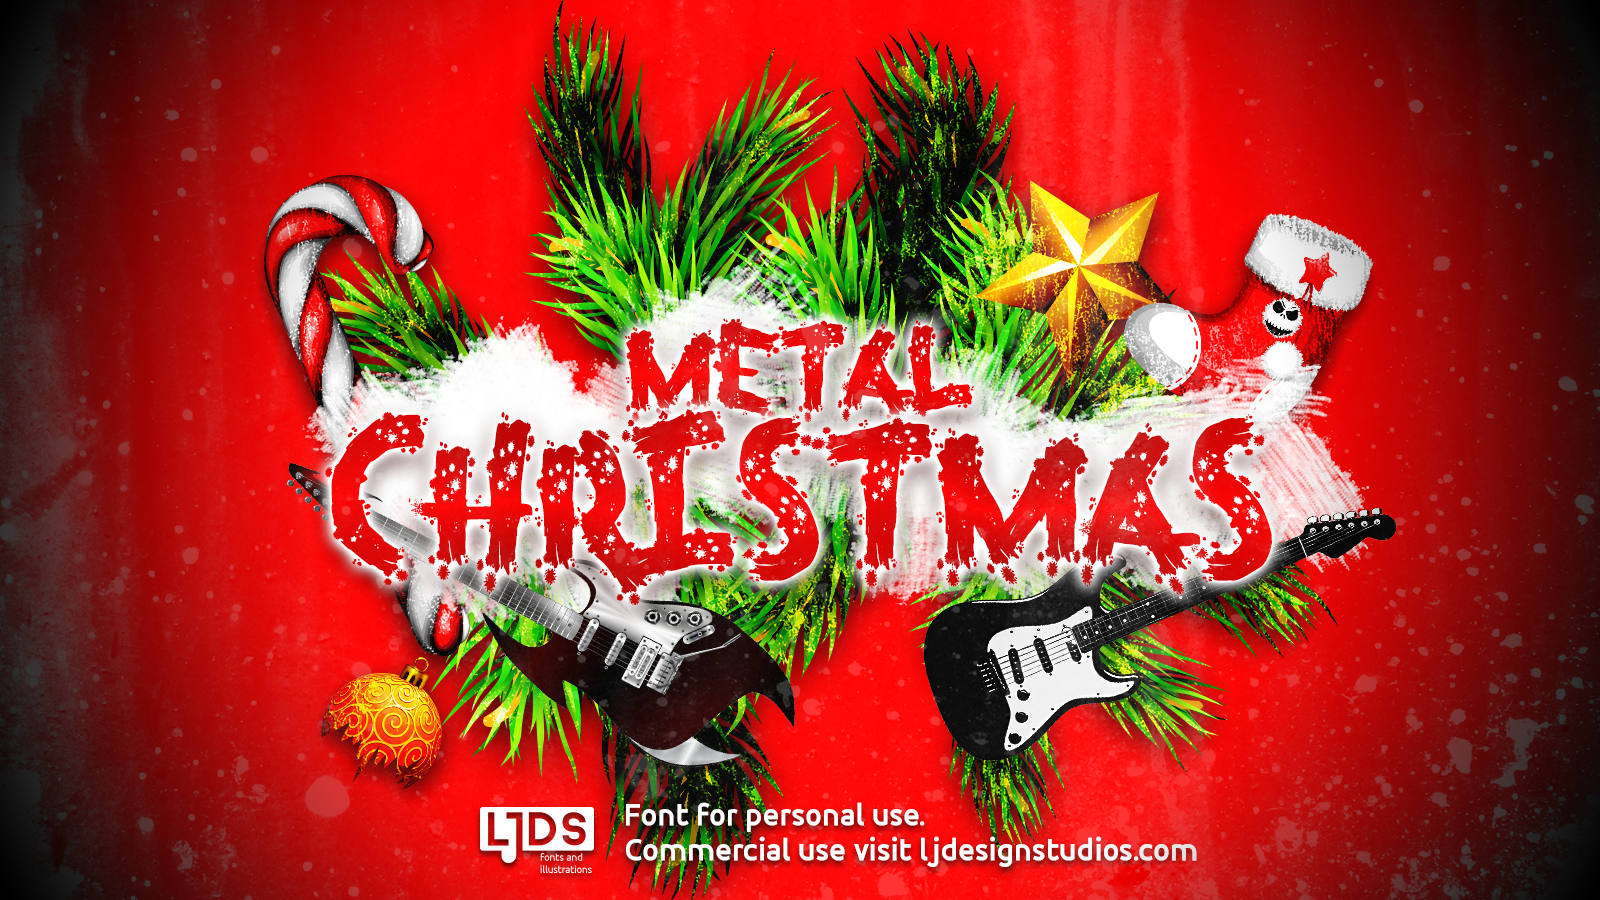 Heavy Metal Christmas.Metal Christmas Personal Use Font Free For Personal